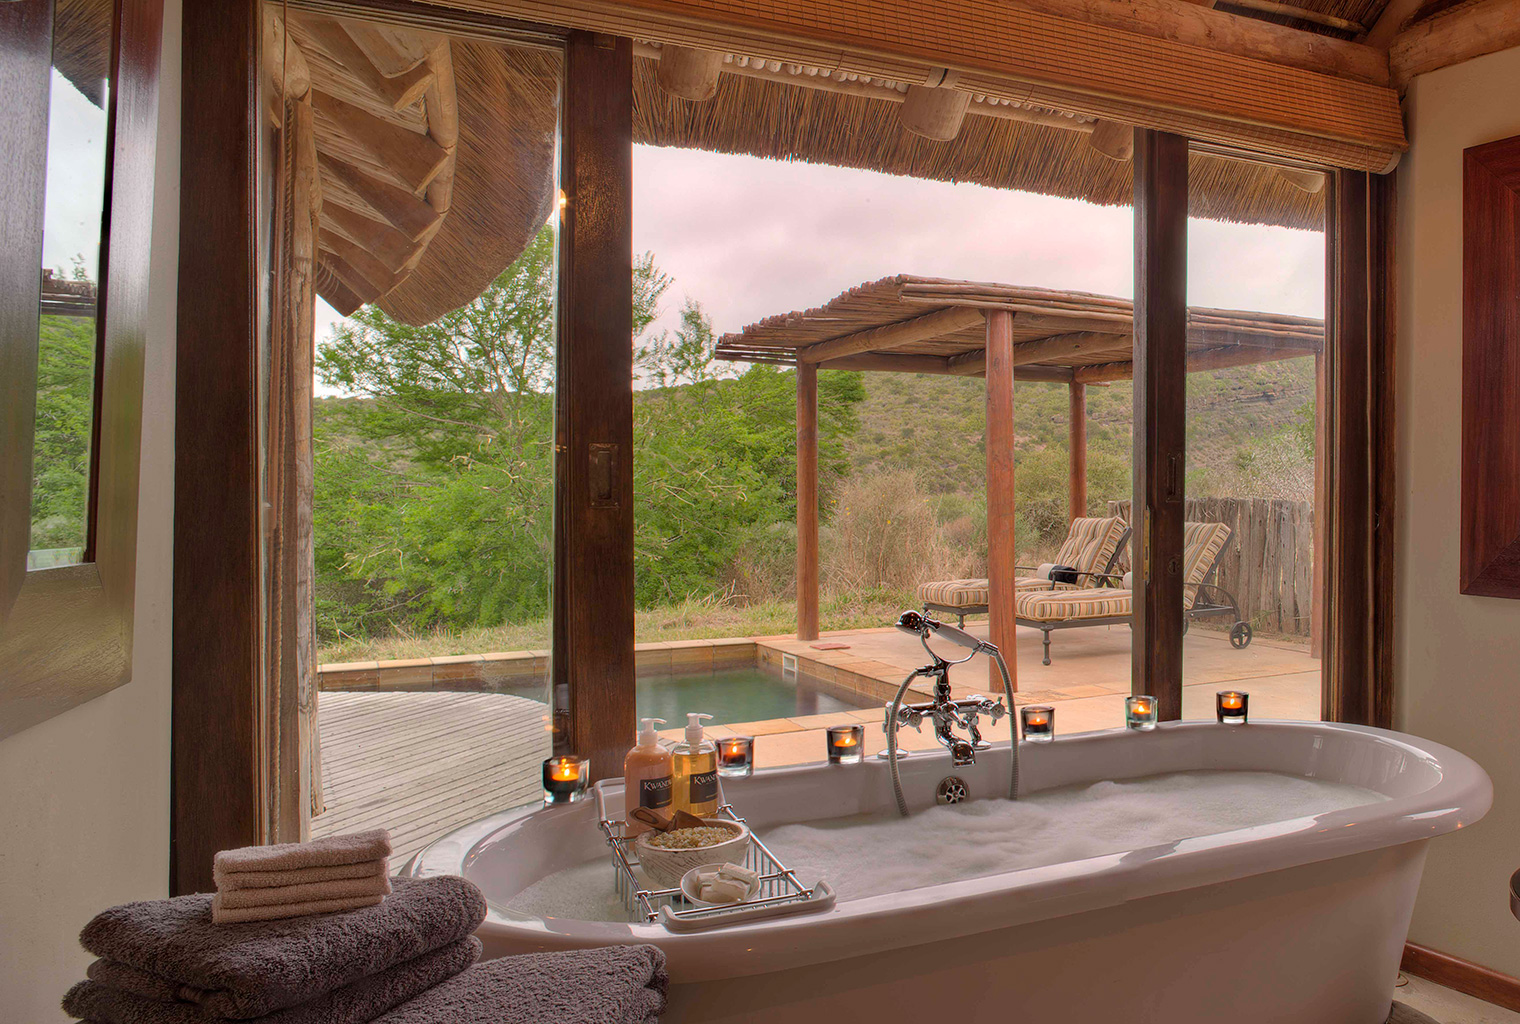 Great-Fish-River-Lodge-South-Africa-Bathroom